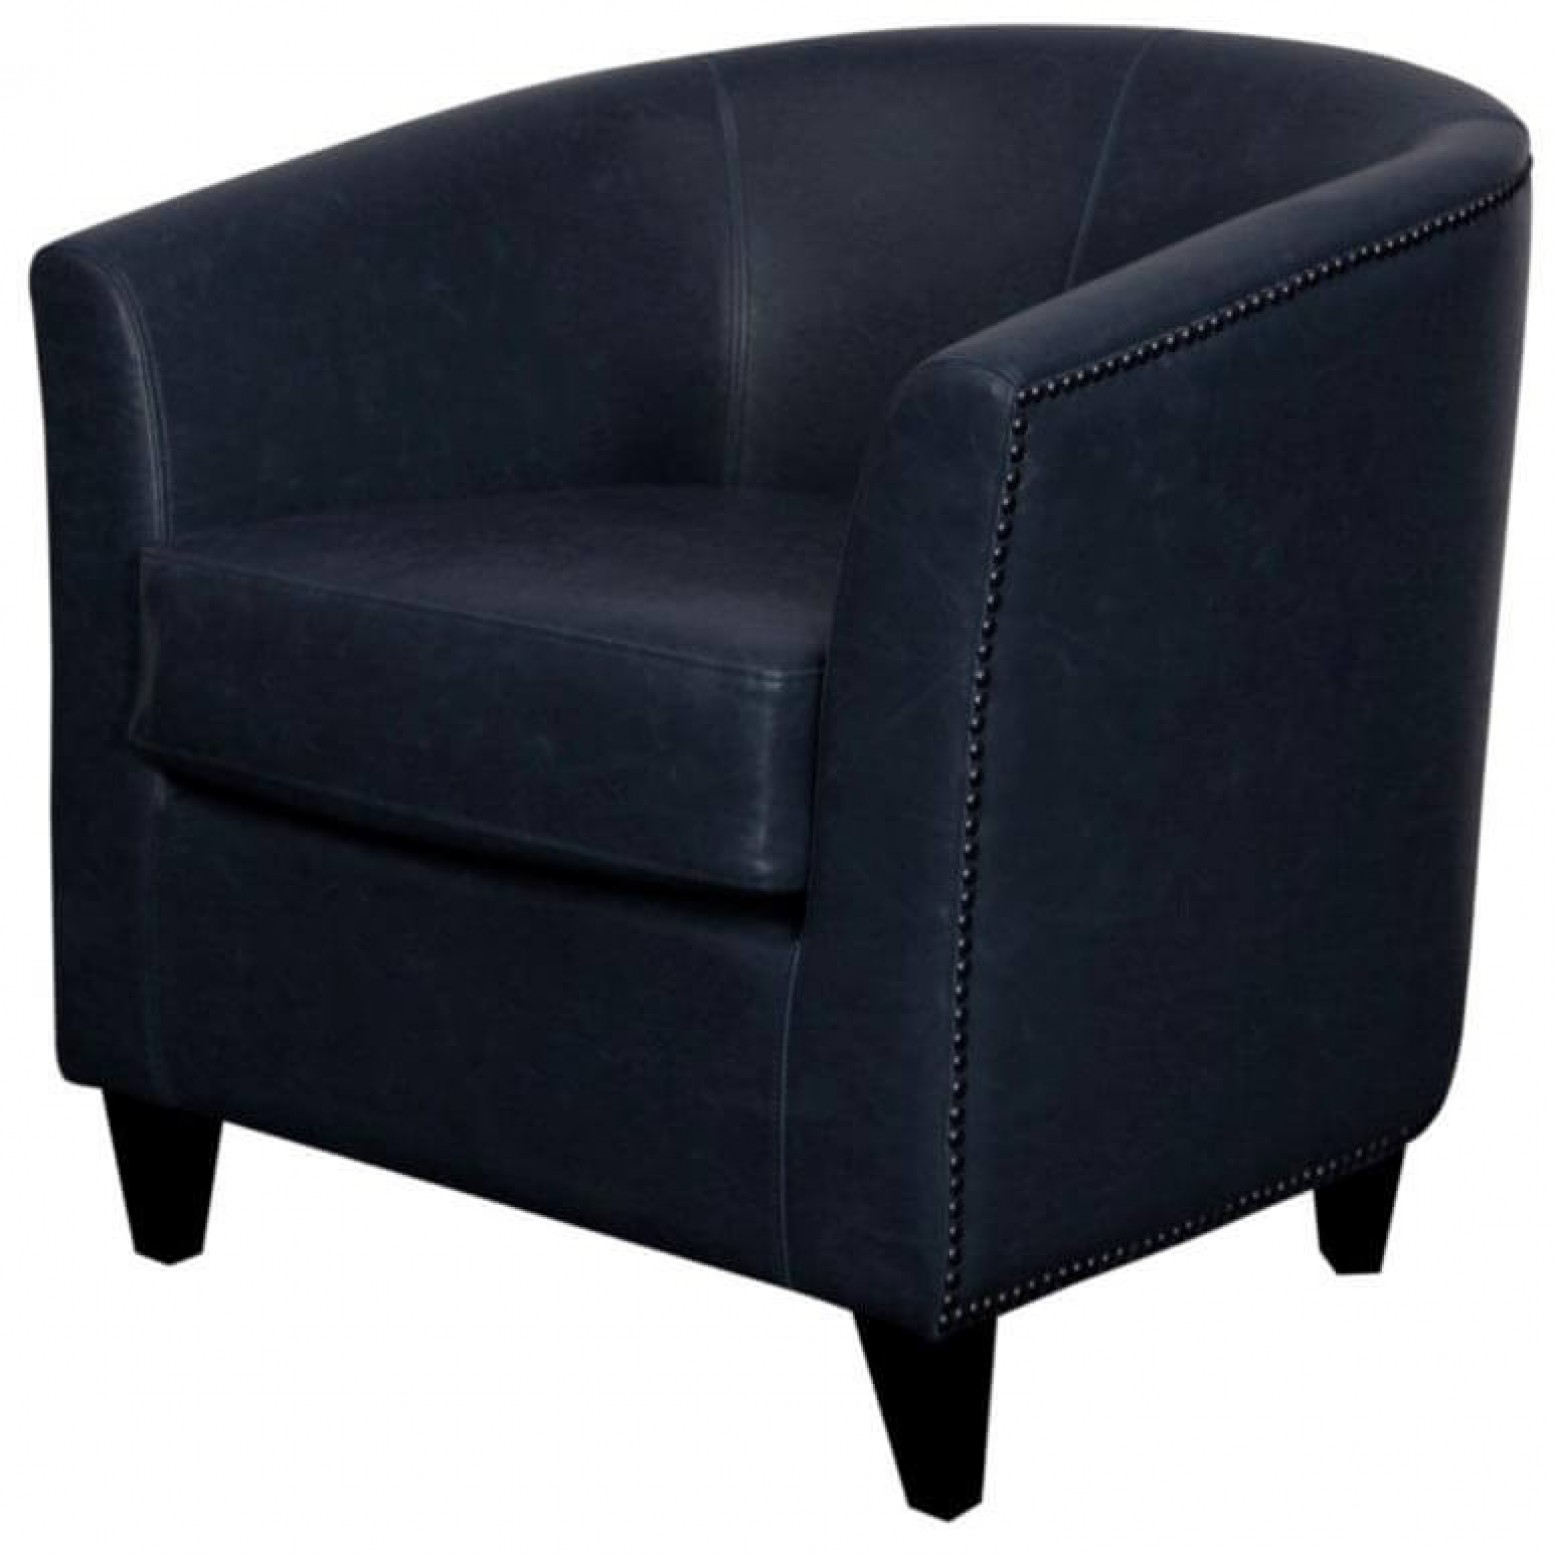 leather tub chair reclining toddler orson bonded black legs vintage blue by npd new pacific direct